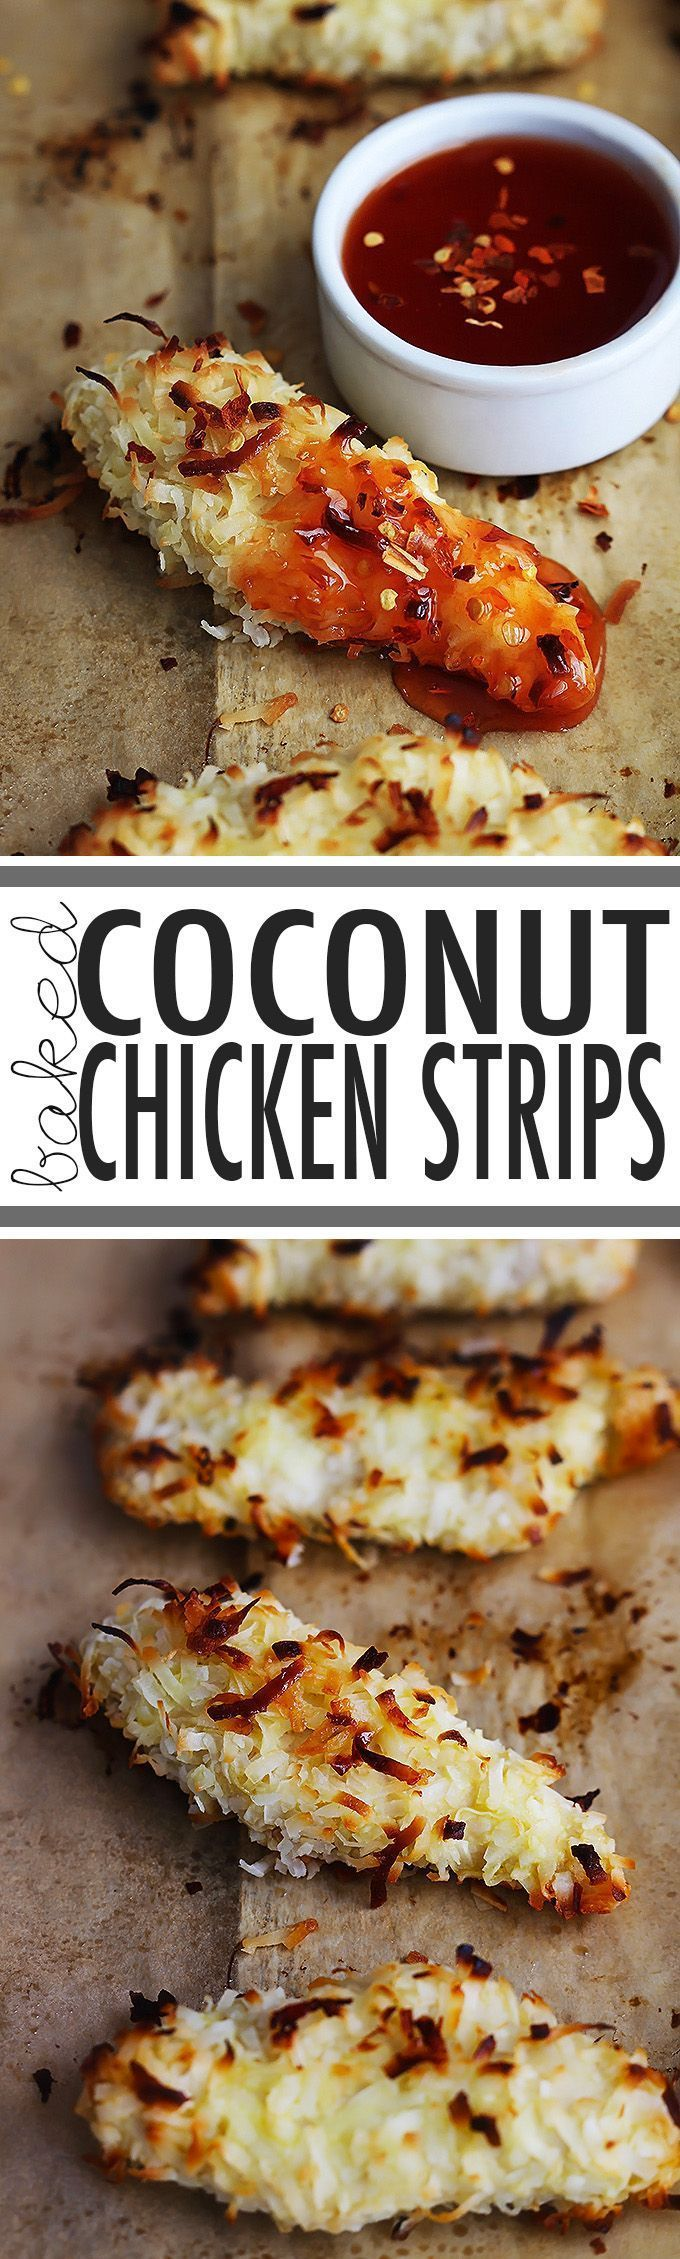 Tender chicken strips coated in sweet coconut flakes and baked til crispy!